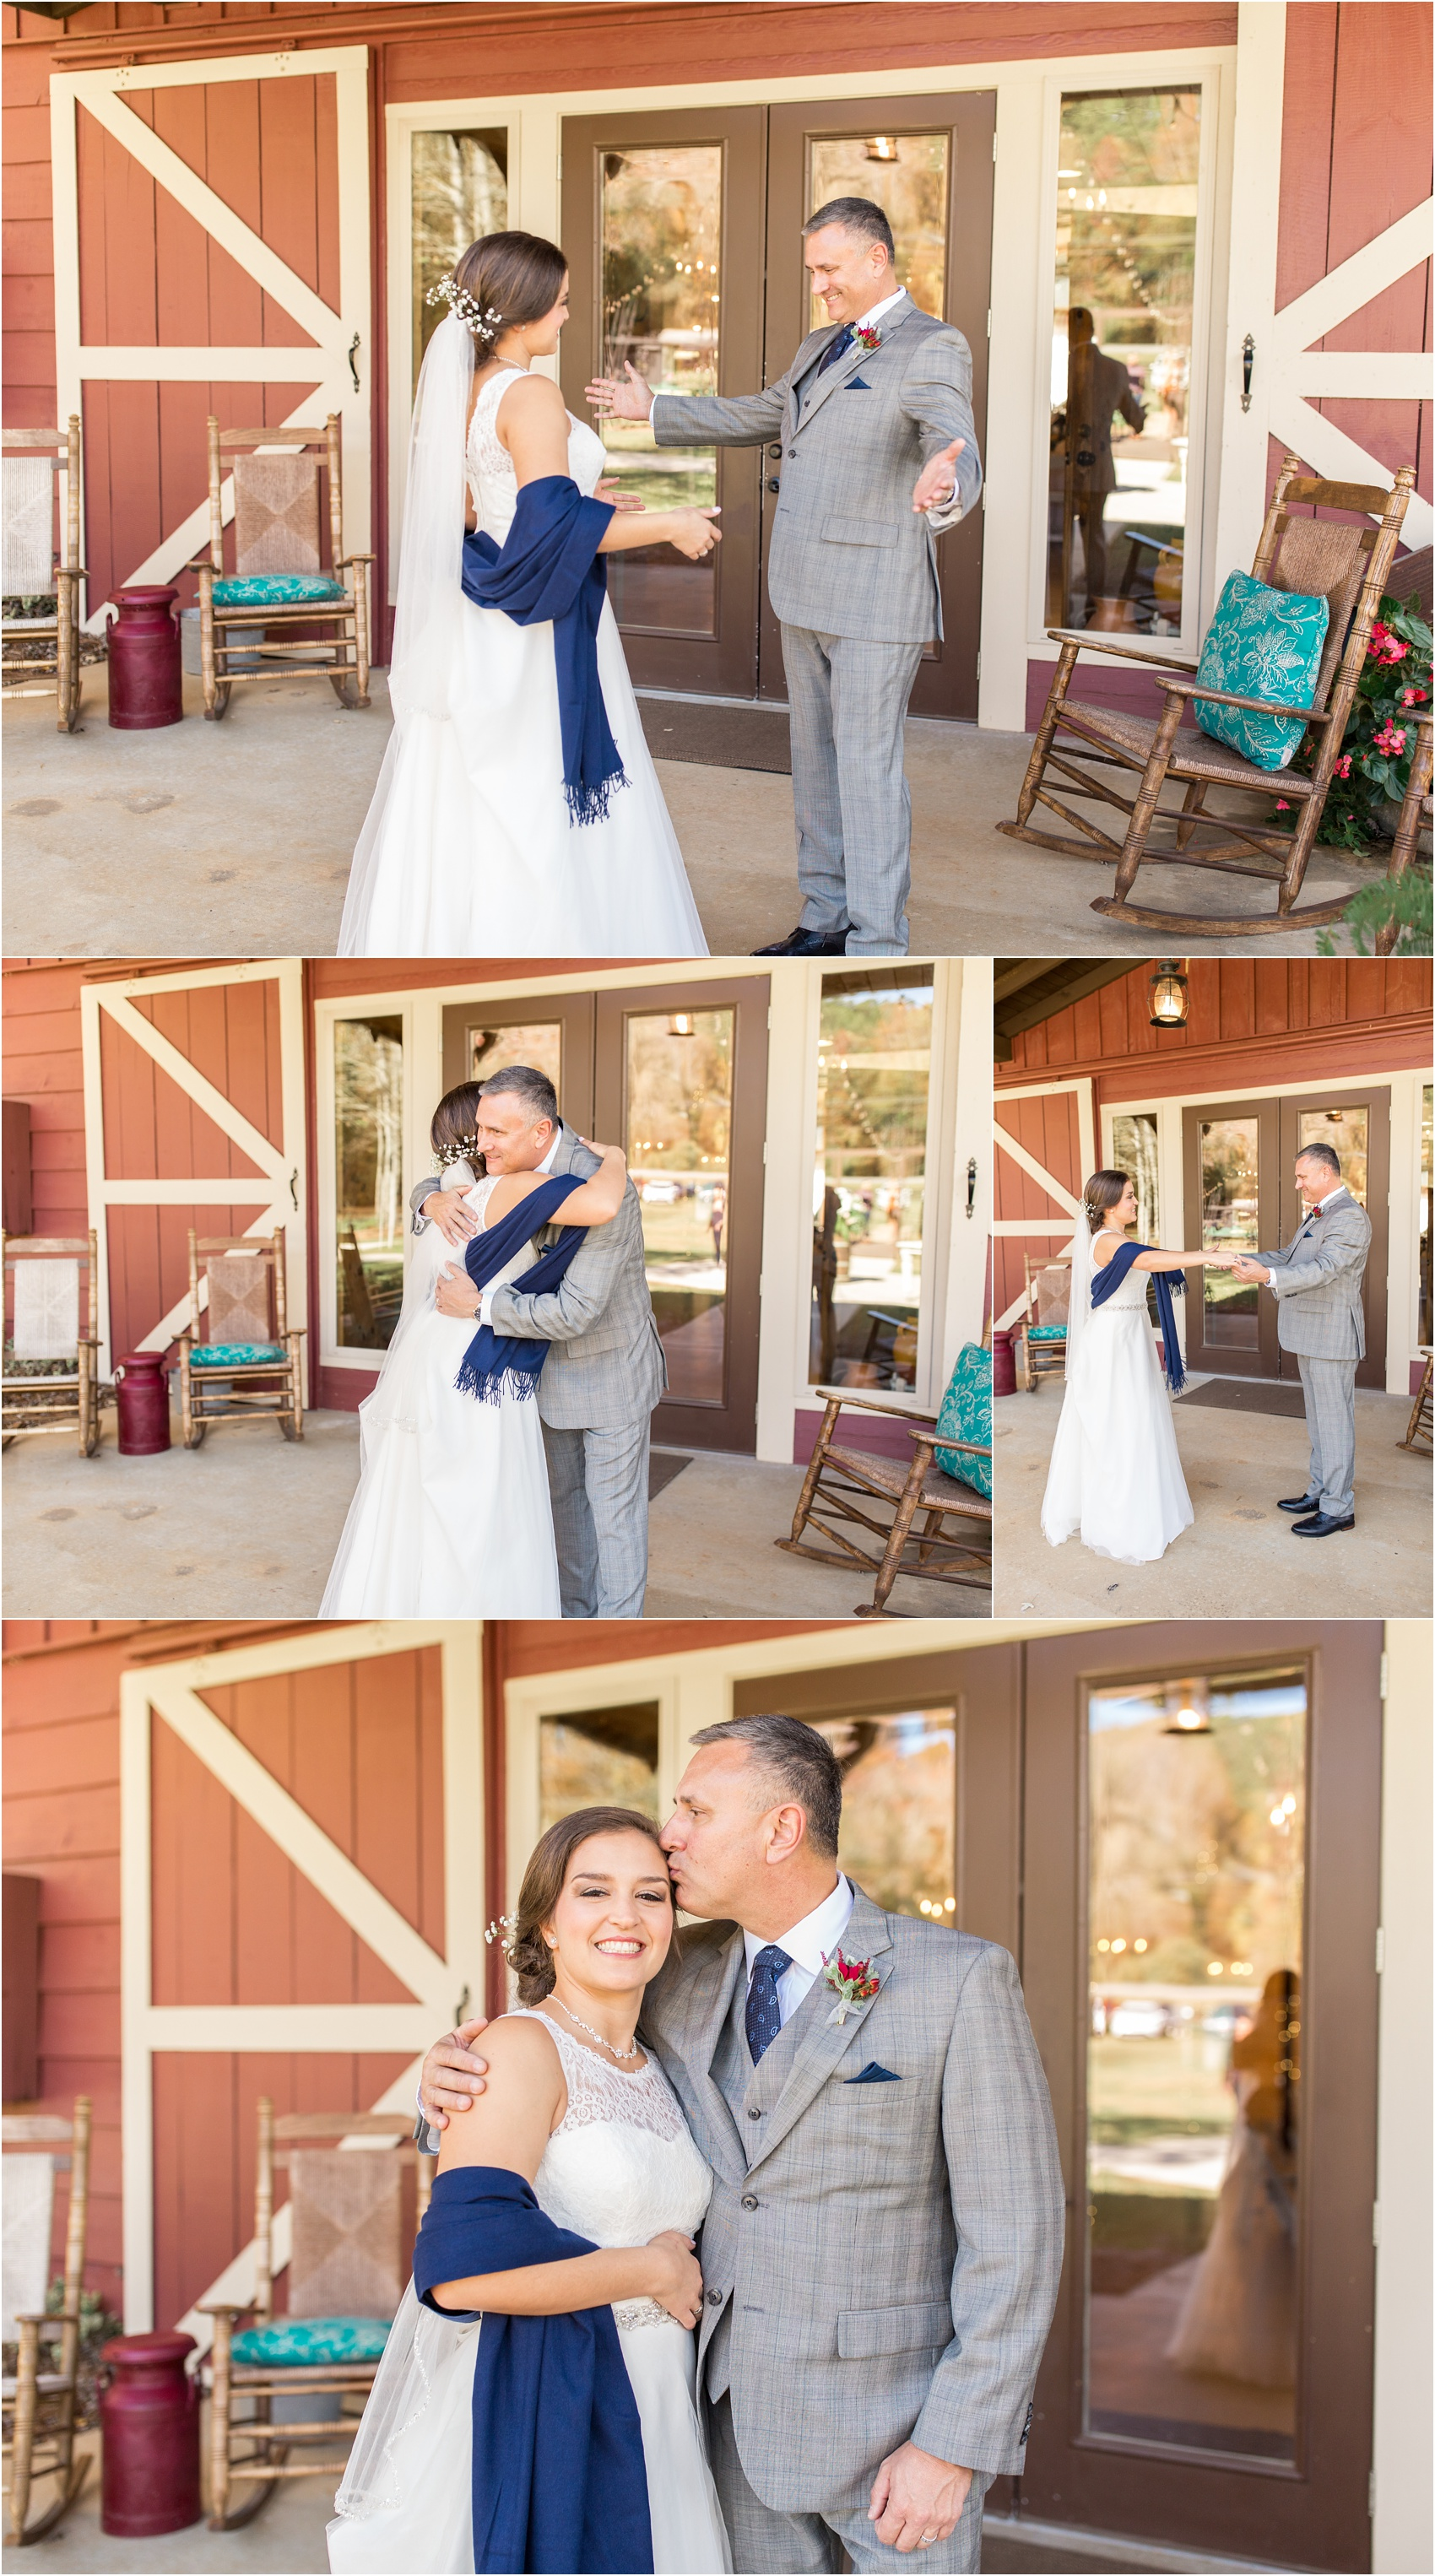 Savannah Eve Photography- McGeary-Epp Wedding- Sneak Peek-10.jpg